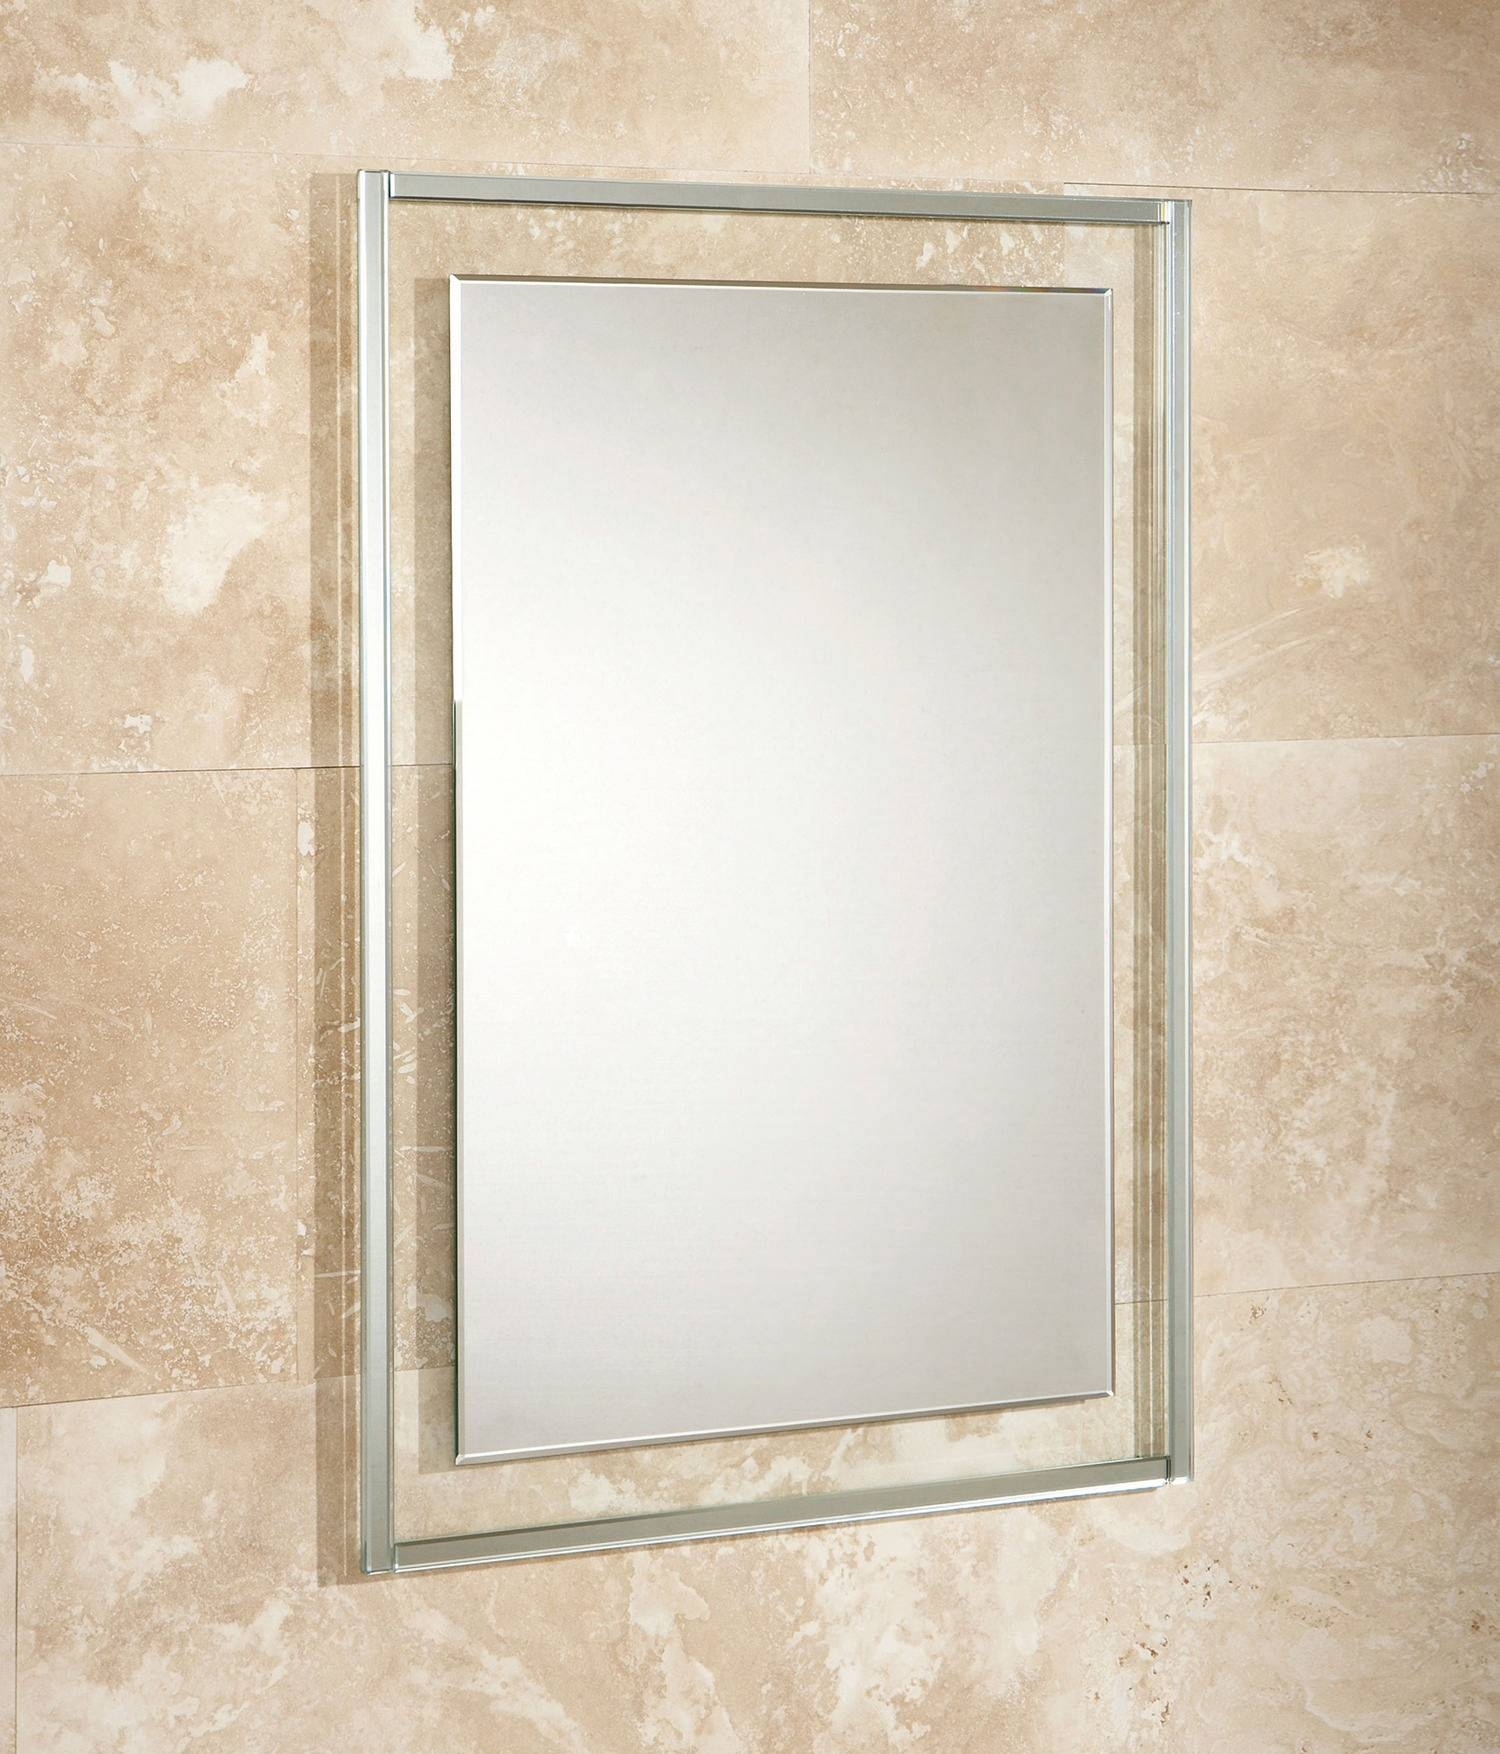 Hib Georgia Bevelled Edge Mirror On Clear Glass Frame 500 X 700Mm Throughout Bevelled Edge Mirrors (View 8 of 15)